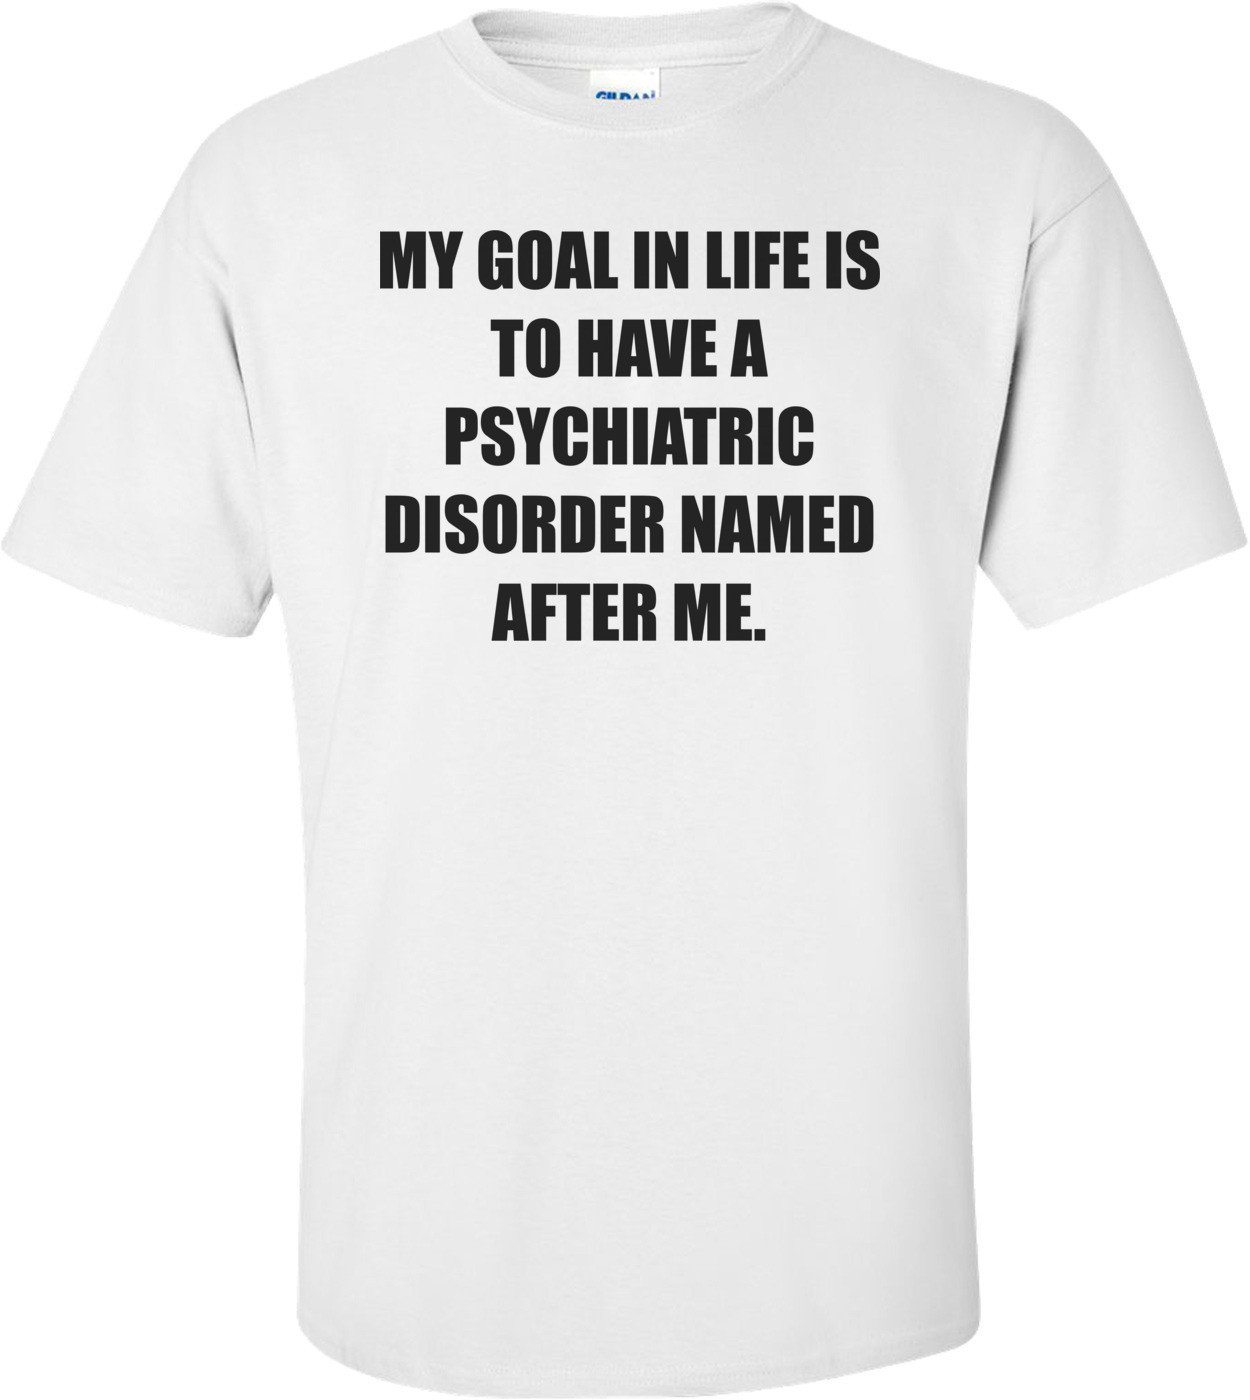 MY GOAL IN LIFE IS TO HAVE A PSYCHIATRIC DISORDER NAMED AFTER ME. Shirt